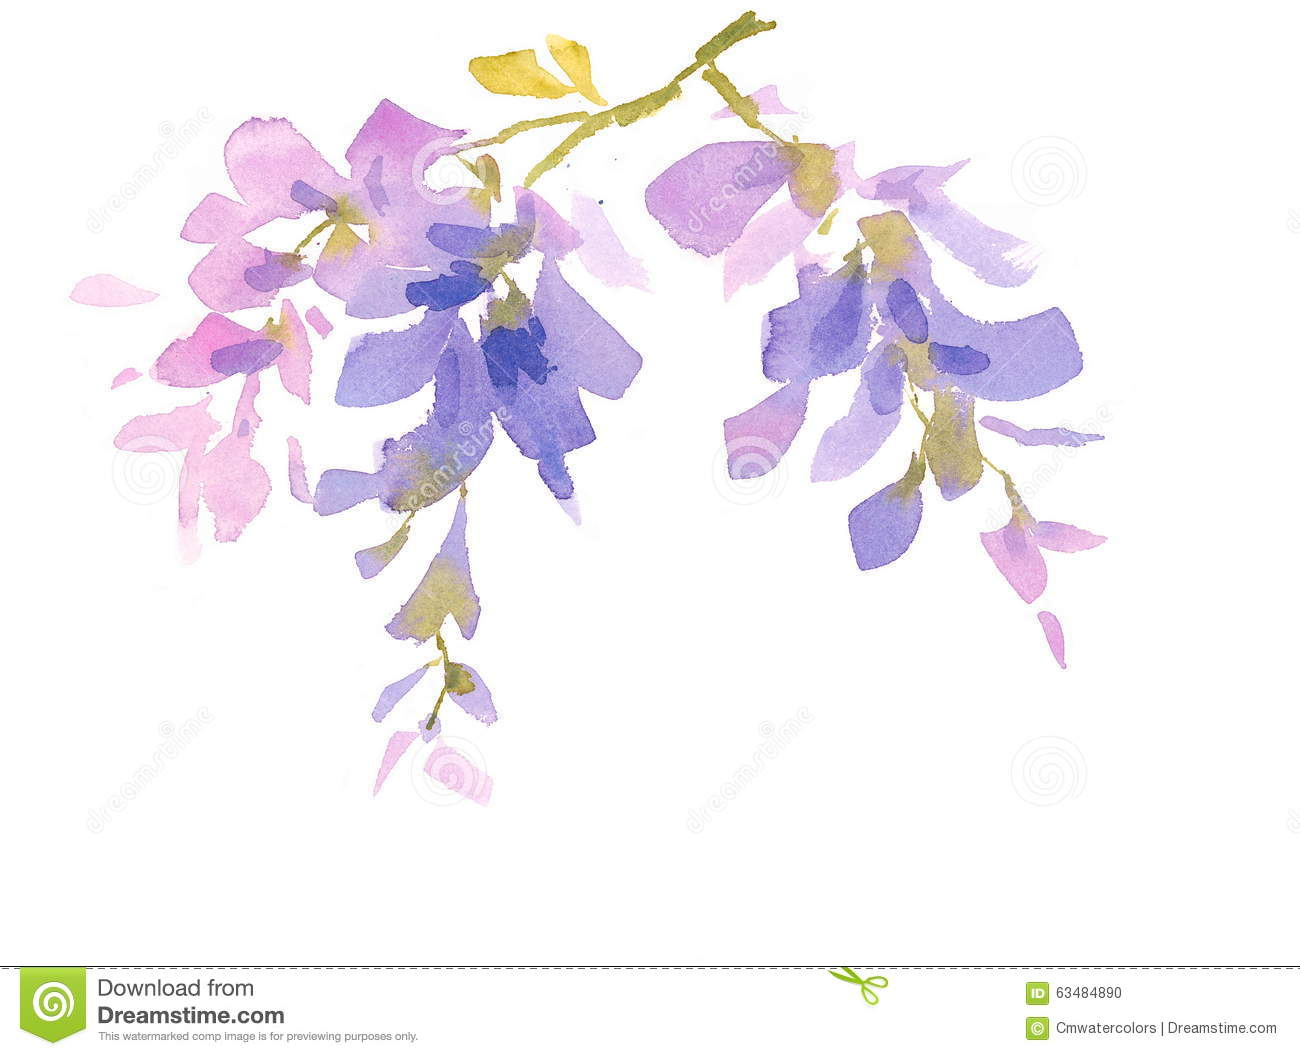 Wisteria Branch Watercolor Flowers Illustration Hand